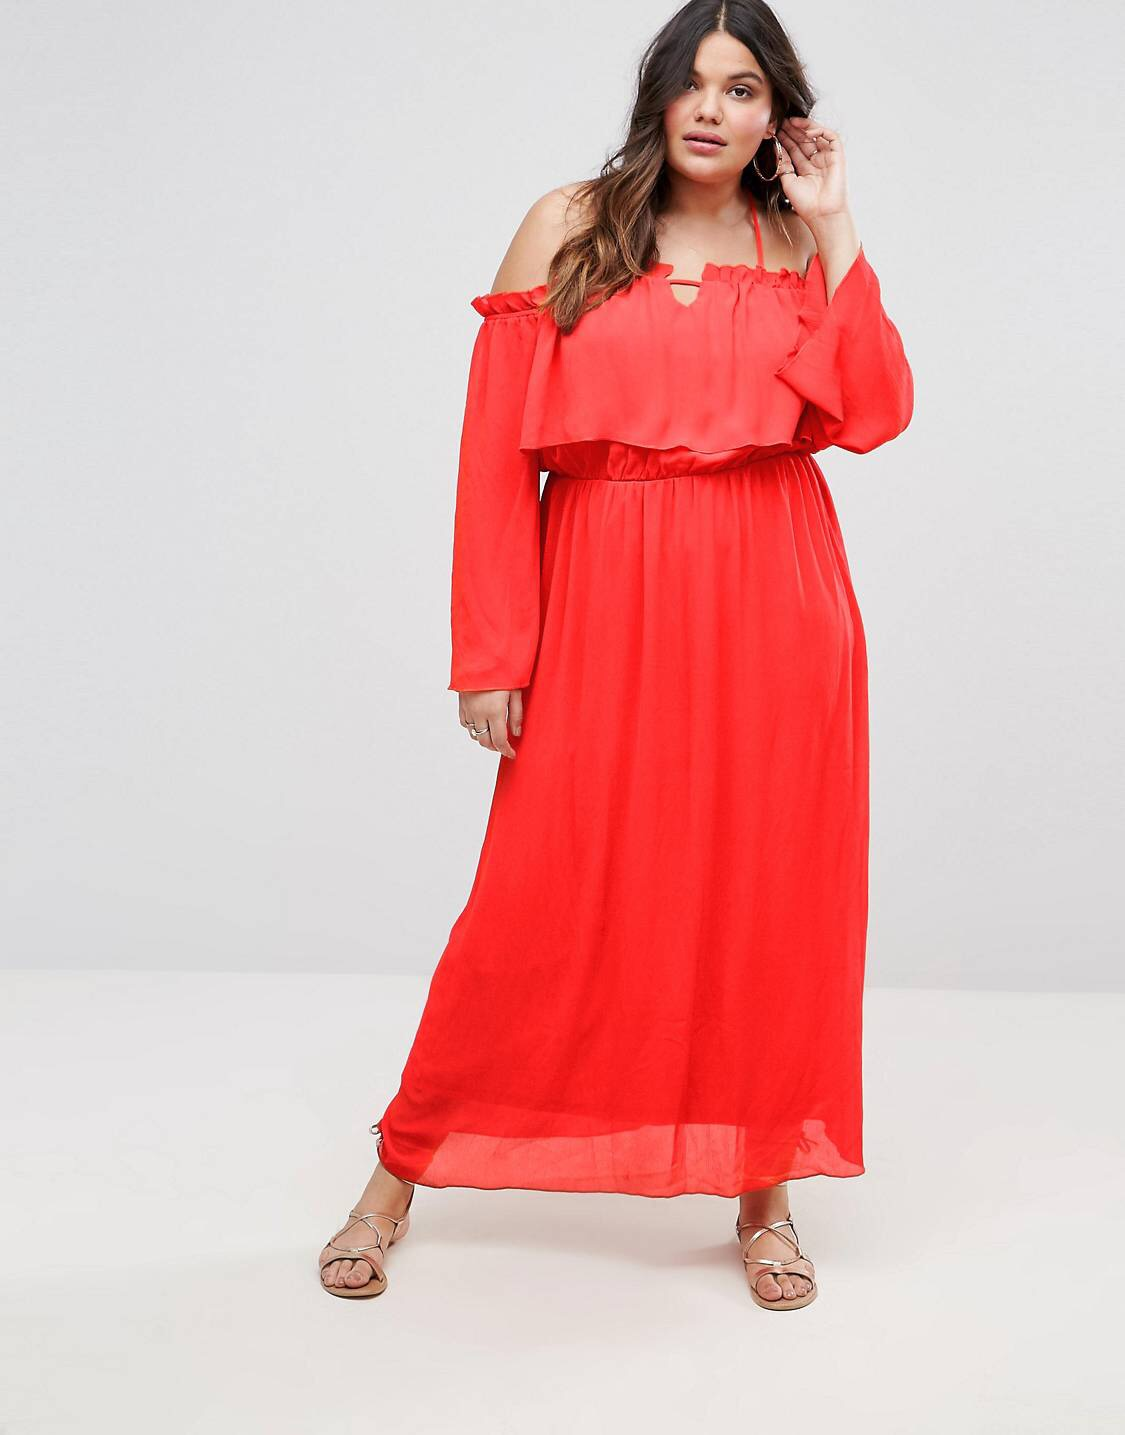 £22.00 - Although some of the pieces I share actually come in plus sizes, I noticed my style tips aren't very inclusive... I'm changing that, soz boo